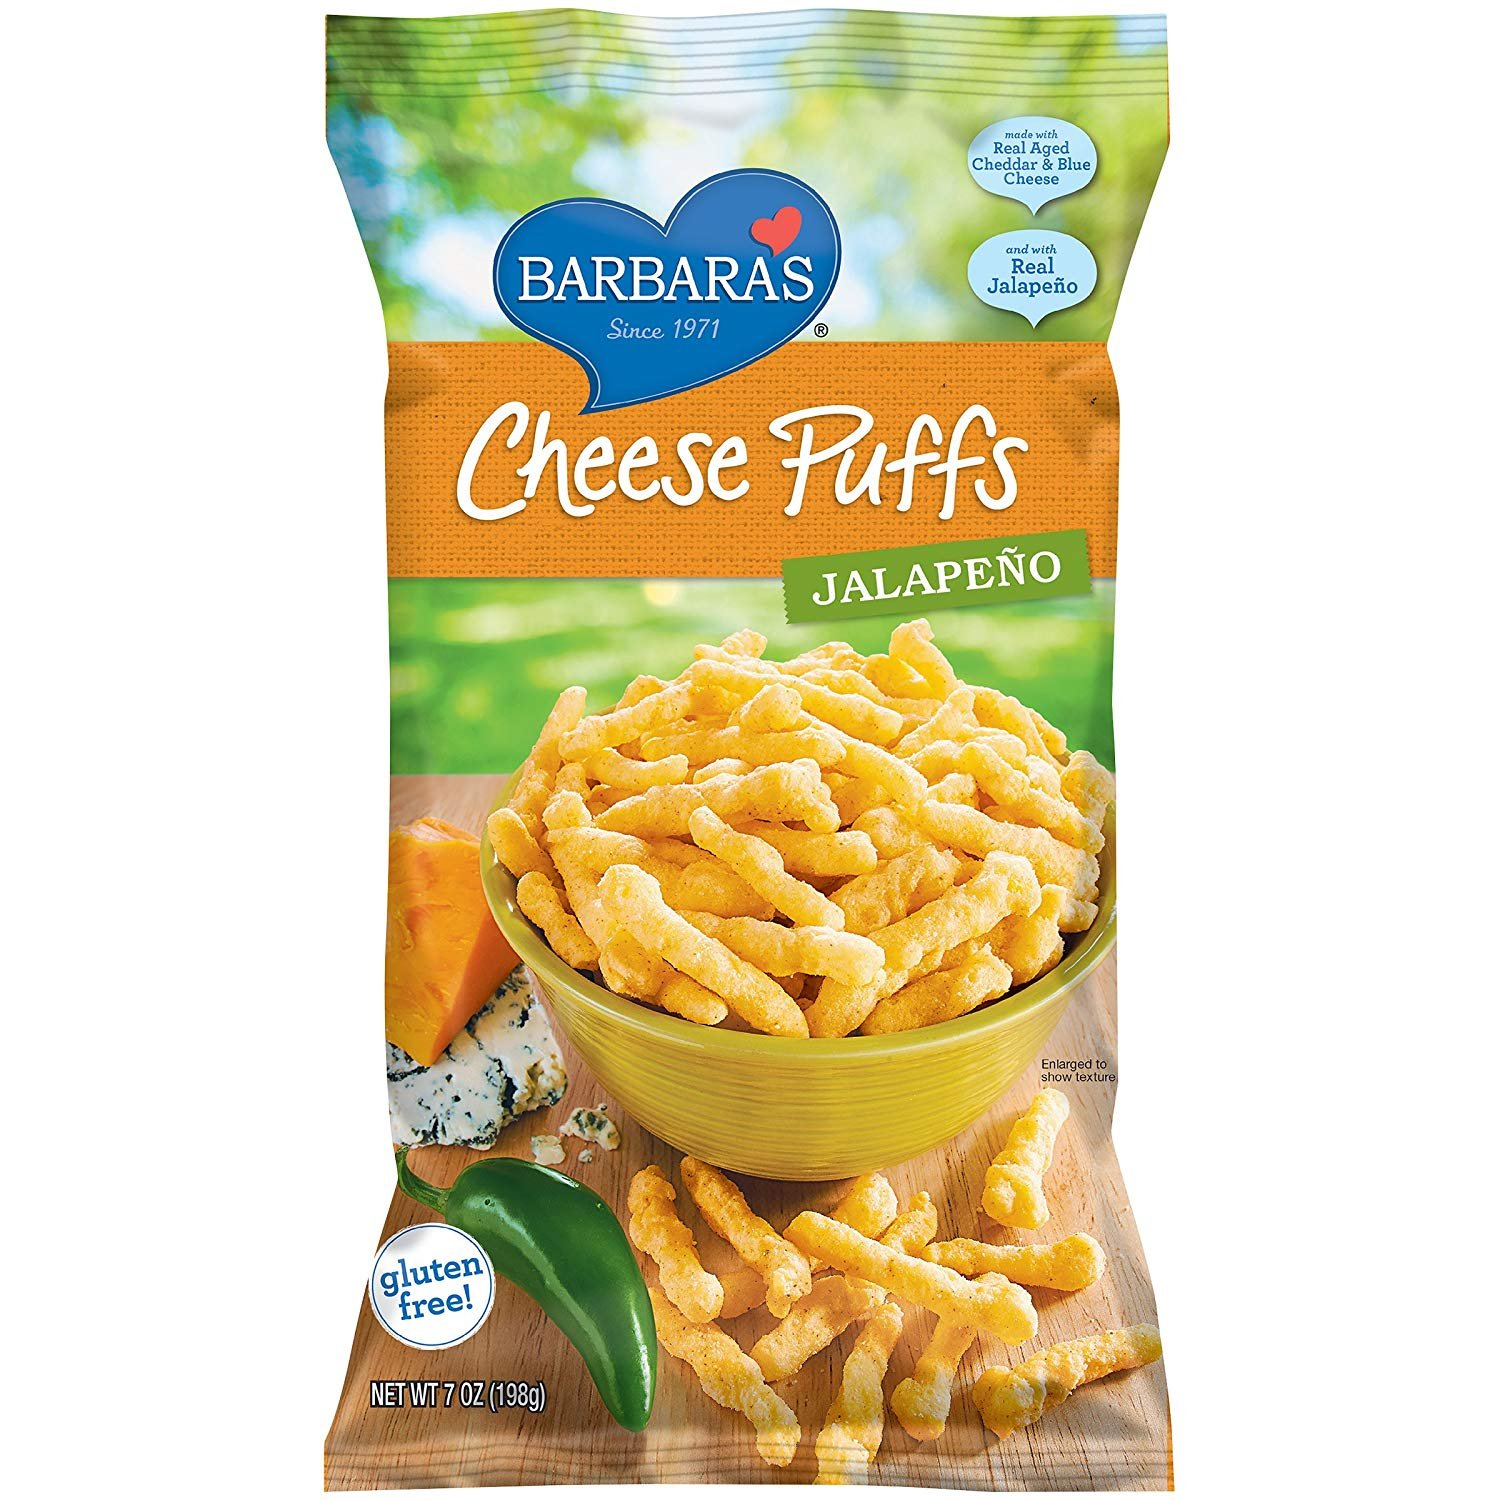 Barabra's Cheese Puffs Jalapeno. These irresistible and light as air gluten-free cheese puffs are the perfect sidekick to any kids holiday party table – made with real cheeses and Non-GMO stone-ground corn, and no hydrogenated oils or synthetic growth hormones.